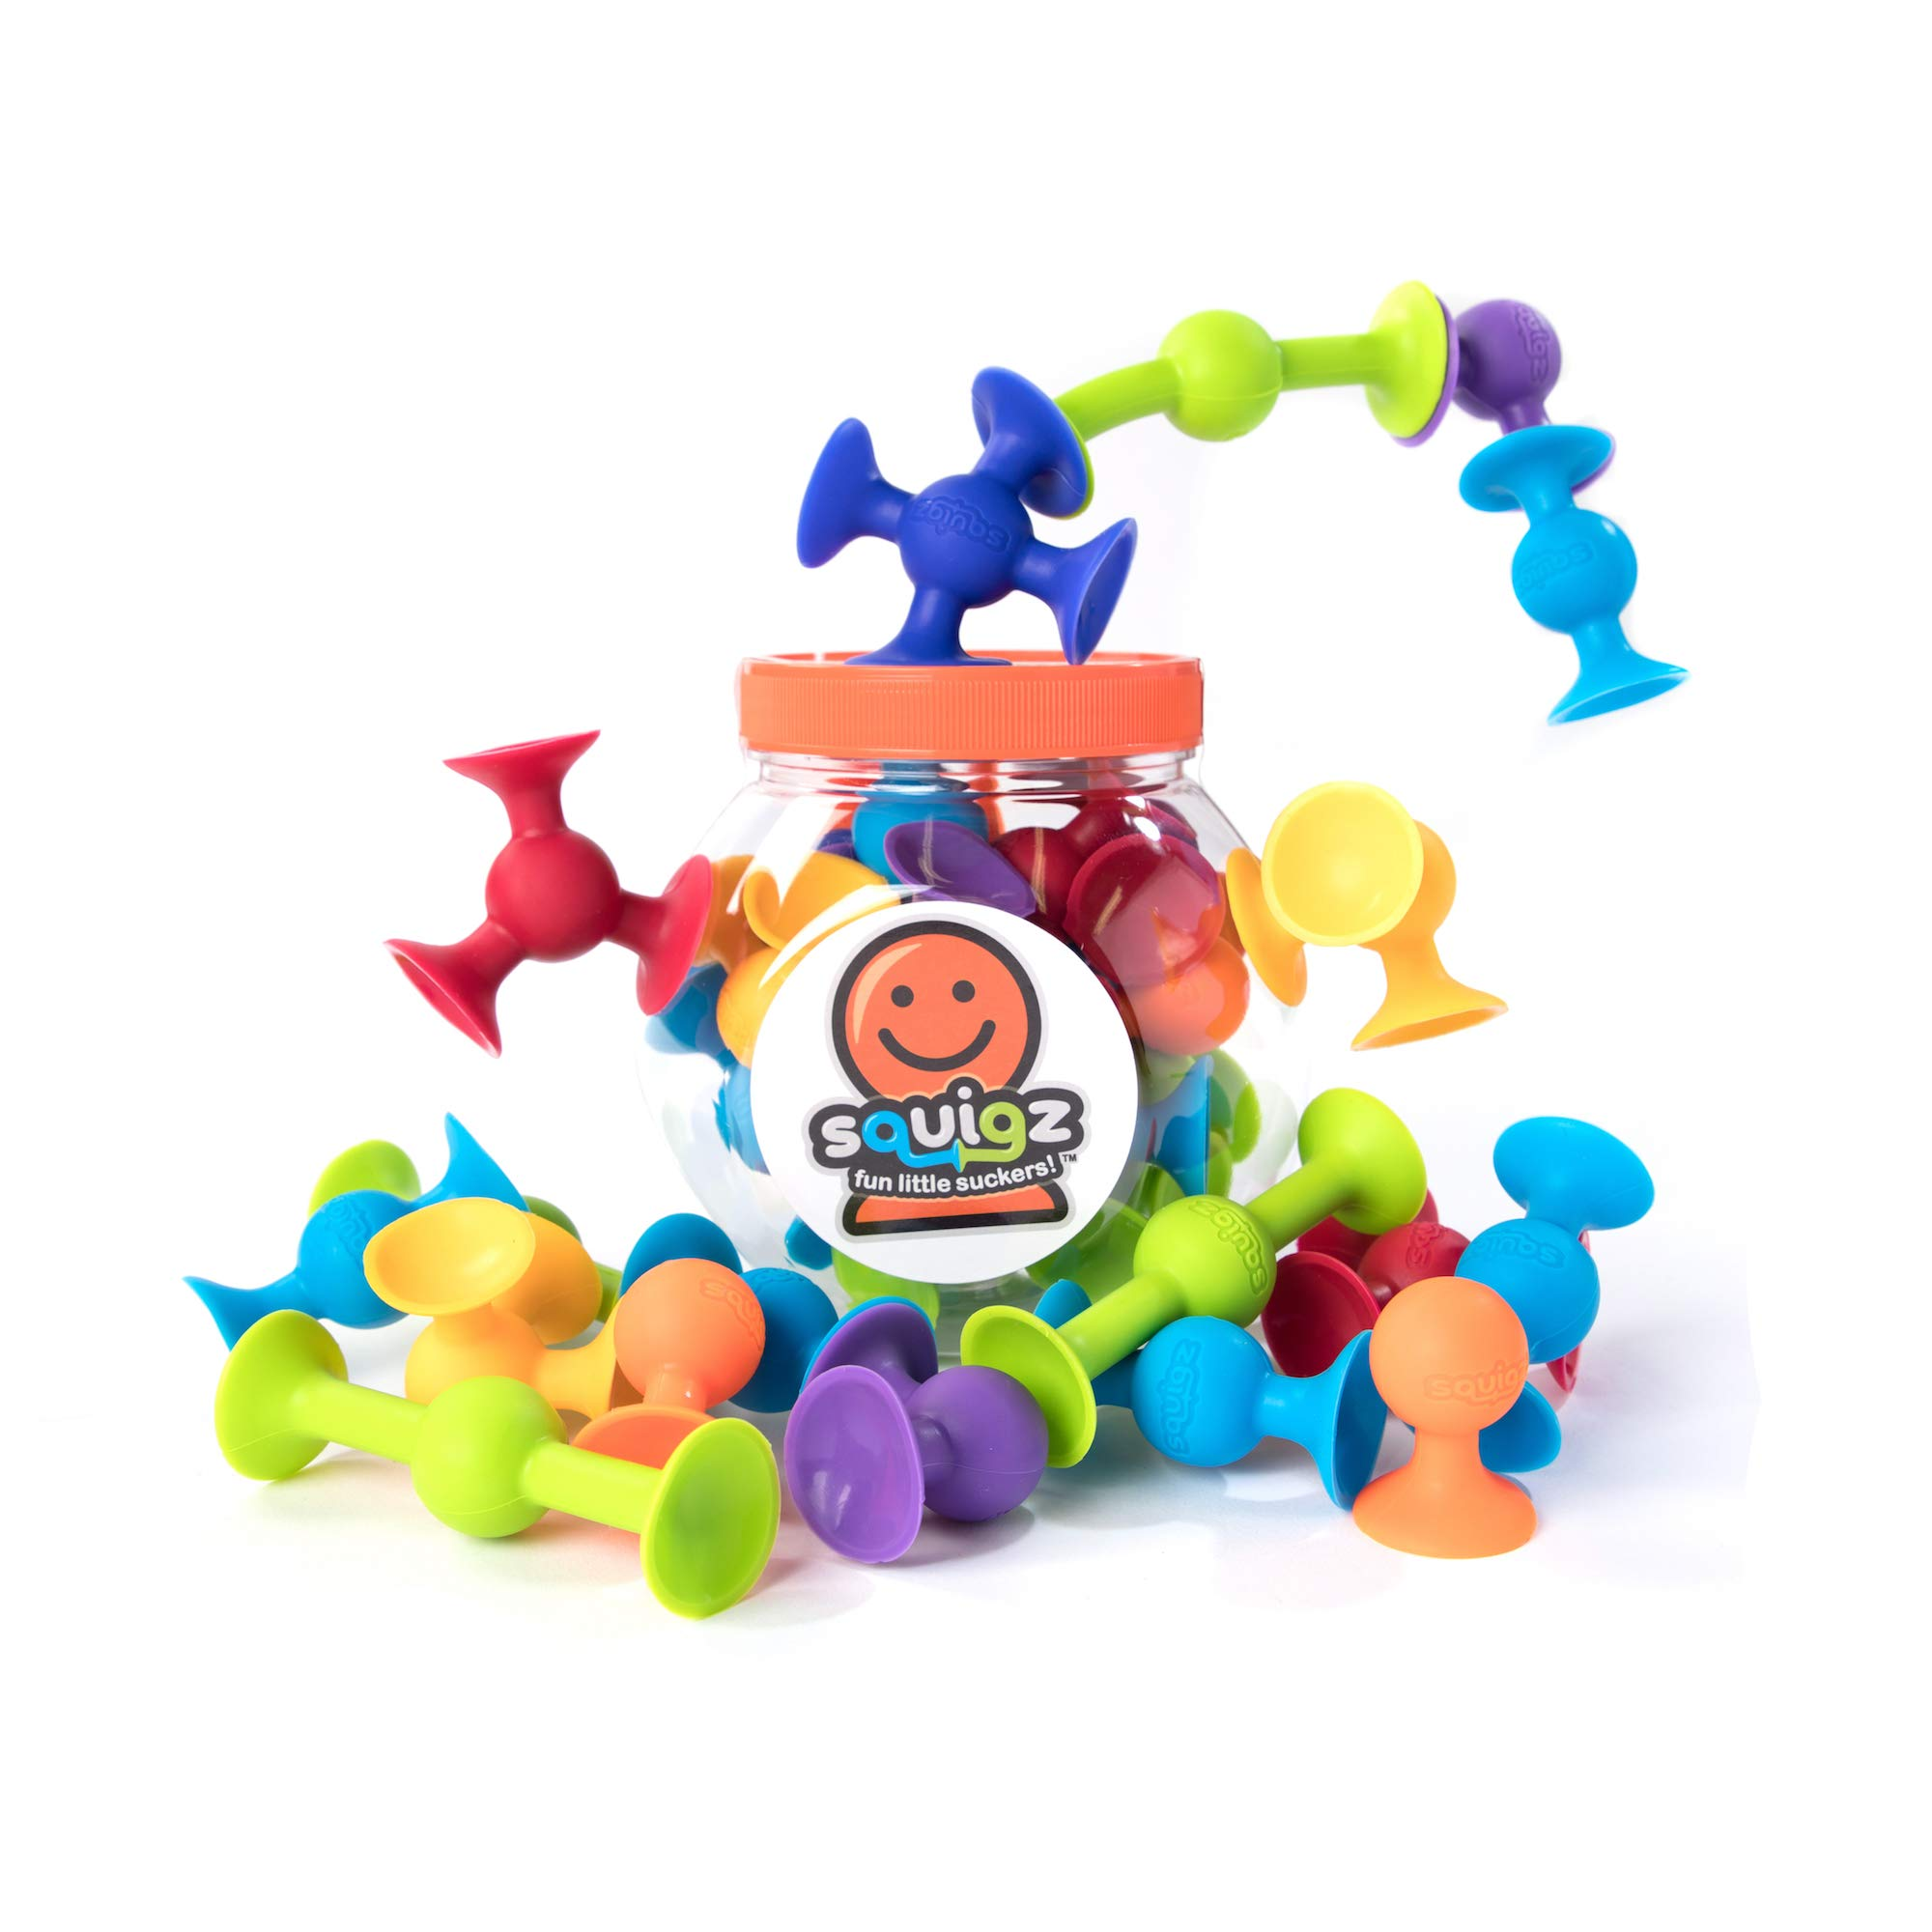 Fat Brain Toys Squigz Limited Edition 18 Piece Set